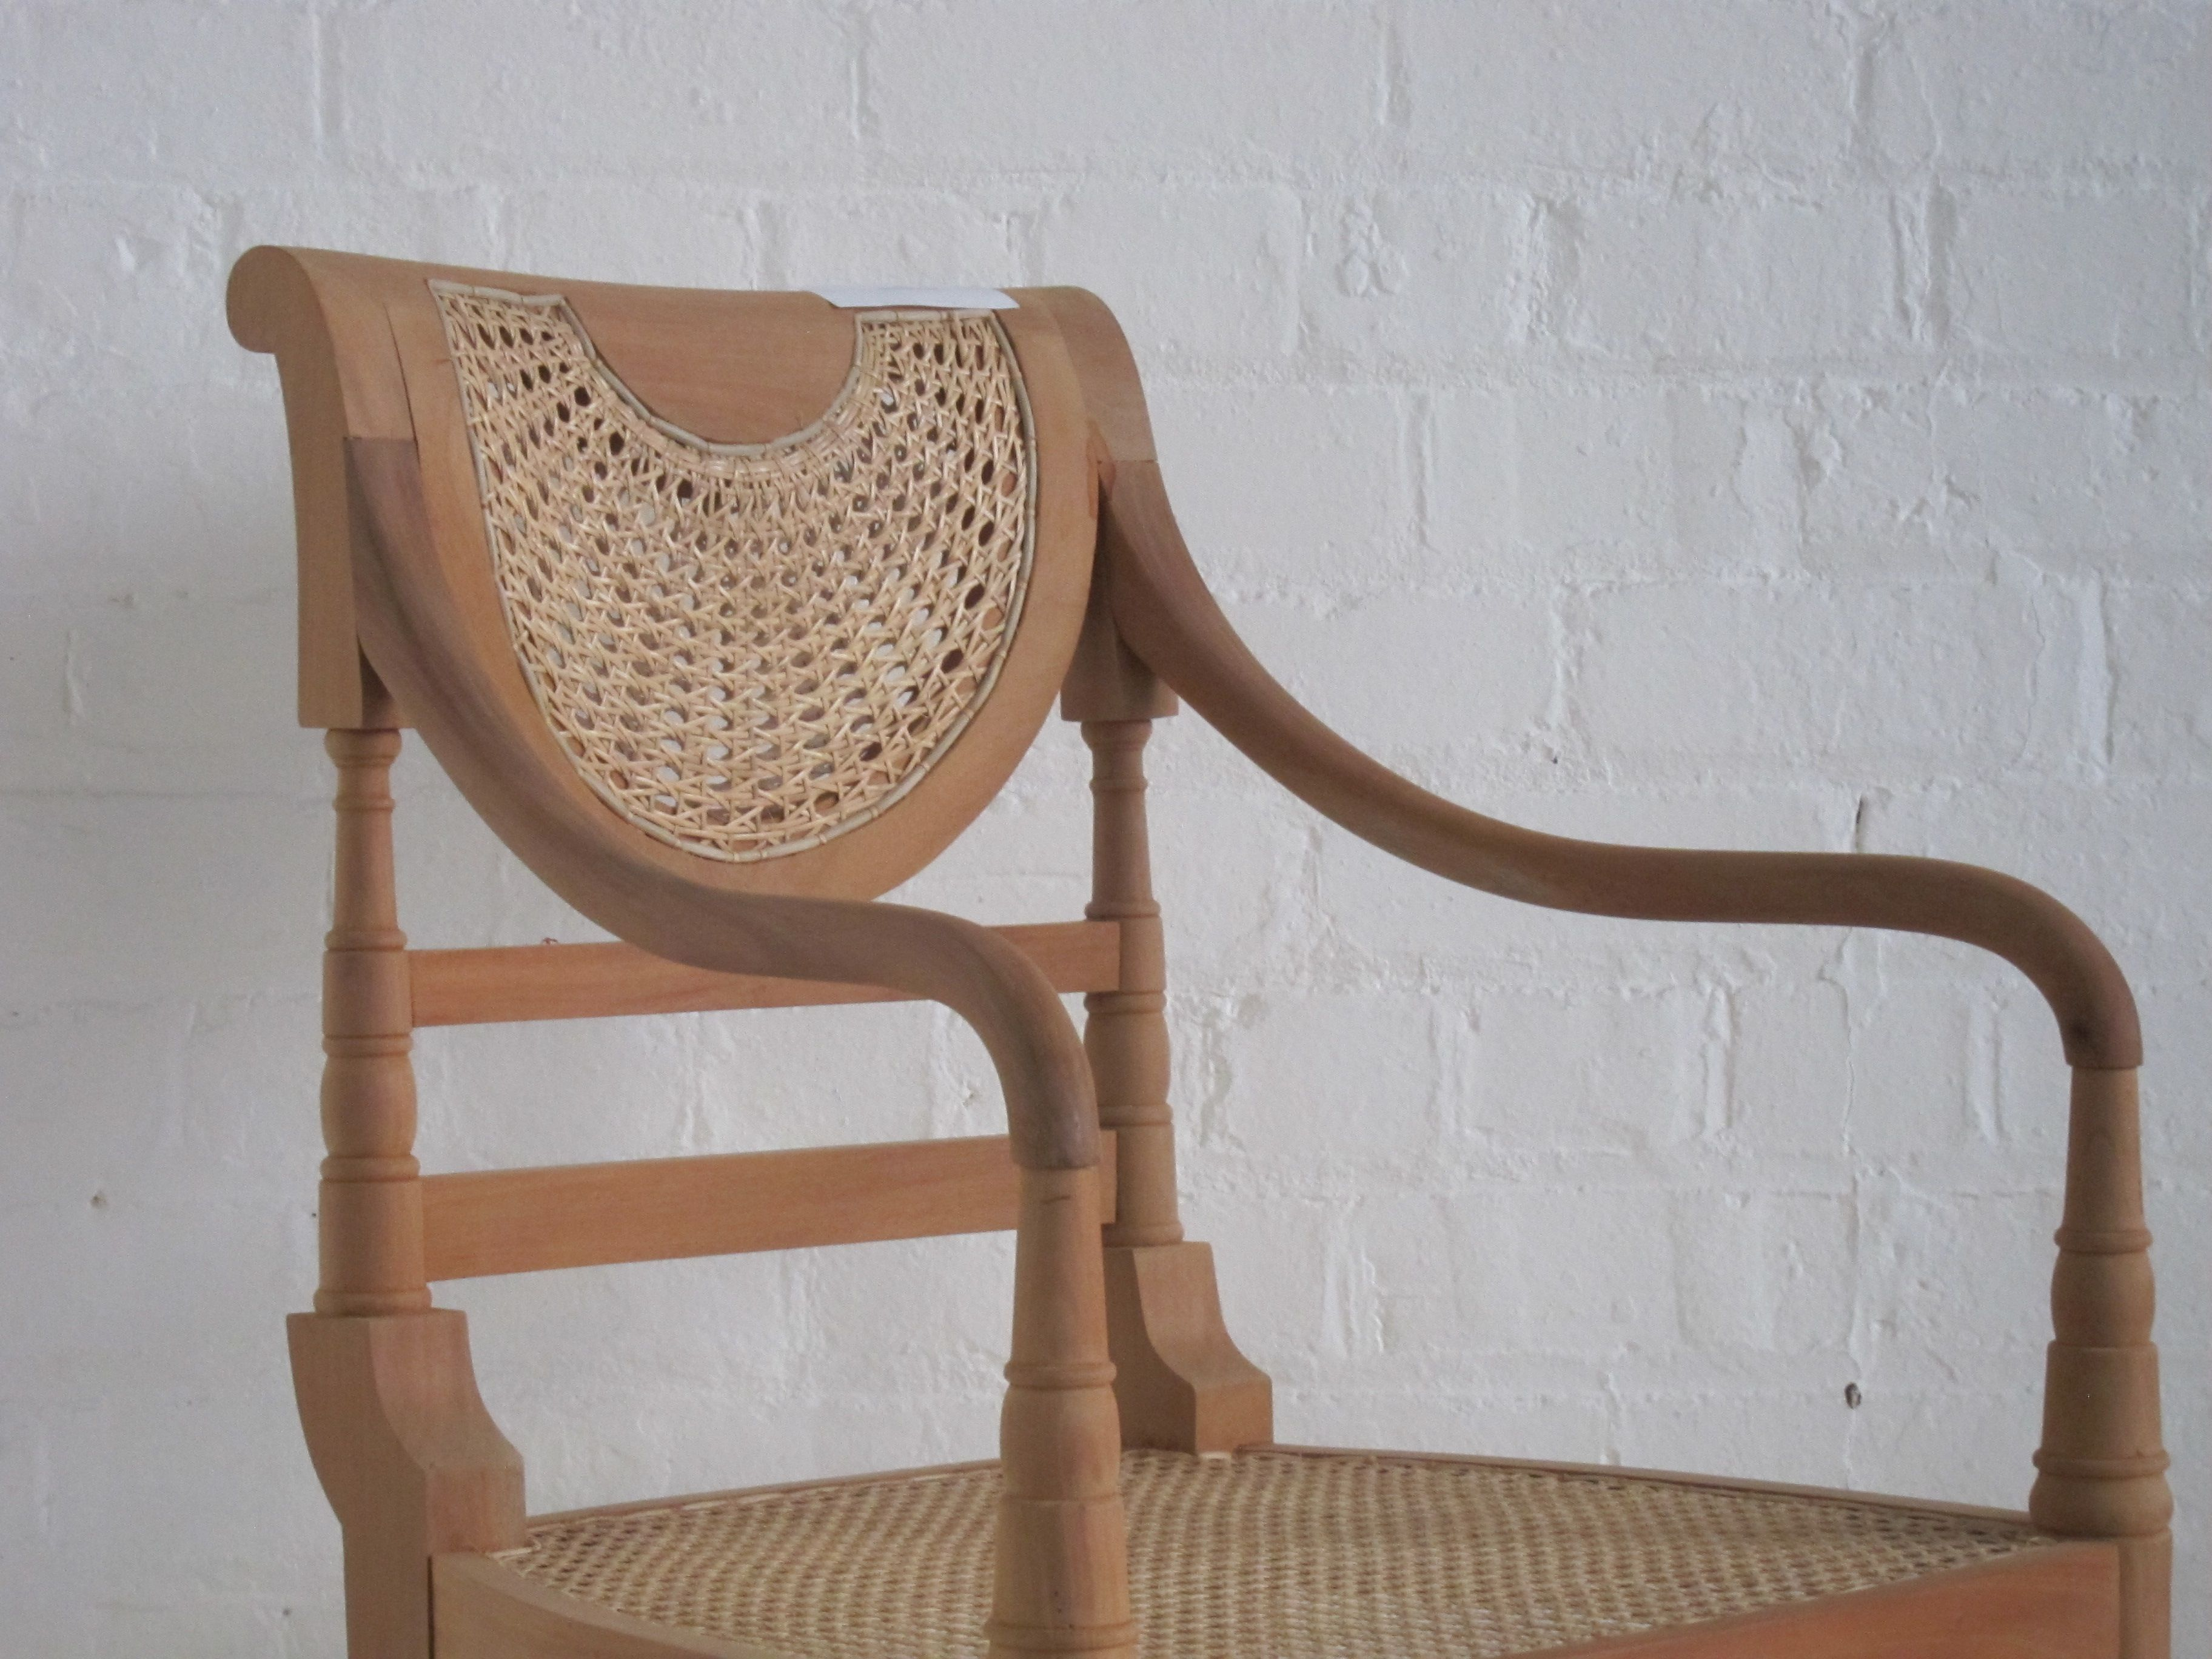 Raffles rattan armchair by Hidden Mill. Create your own ...